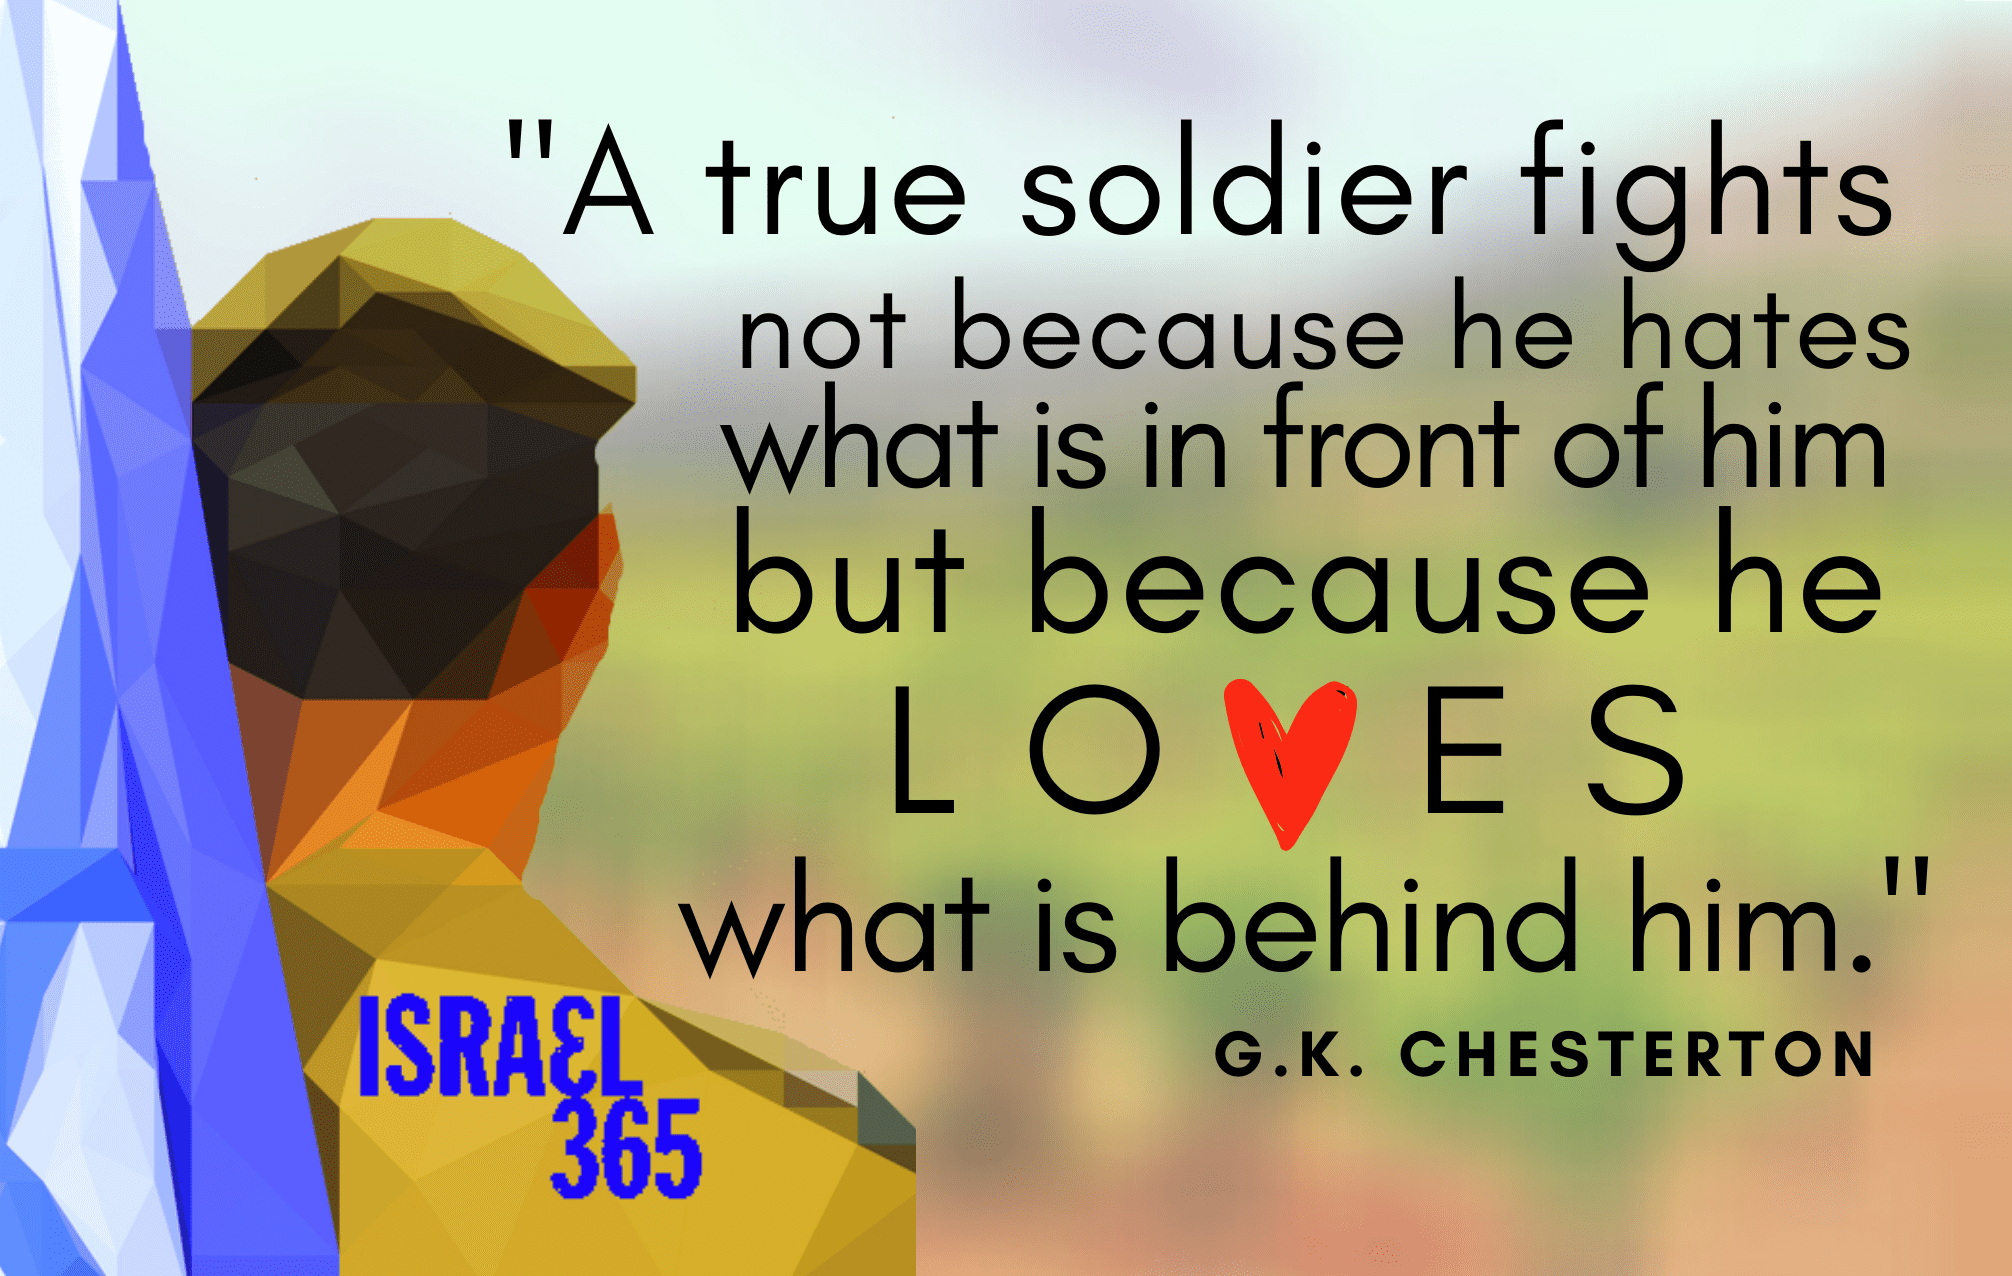 a-true-soldier-fights-not-because-he-hates-what-is-in-front-of-him,-but-because-he-loves-what-is-behind-him